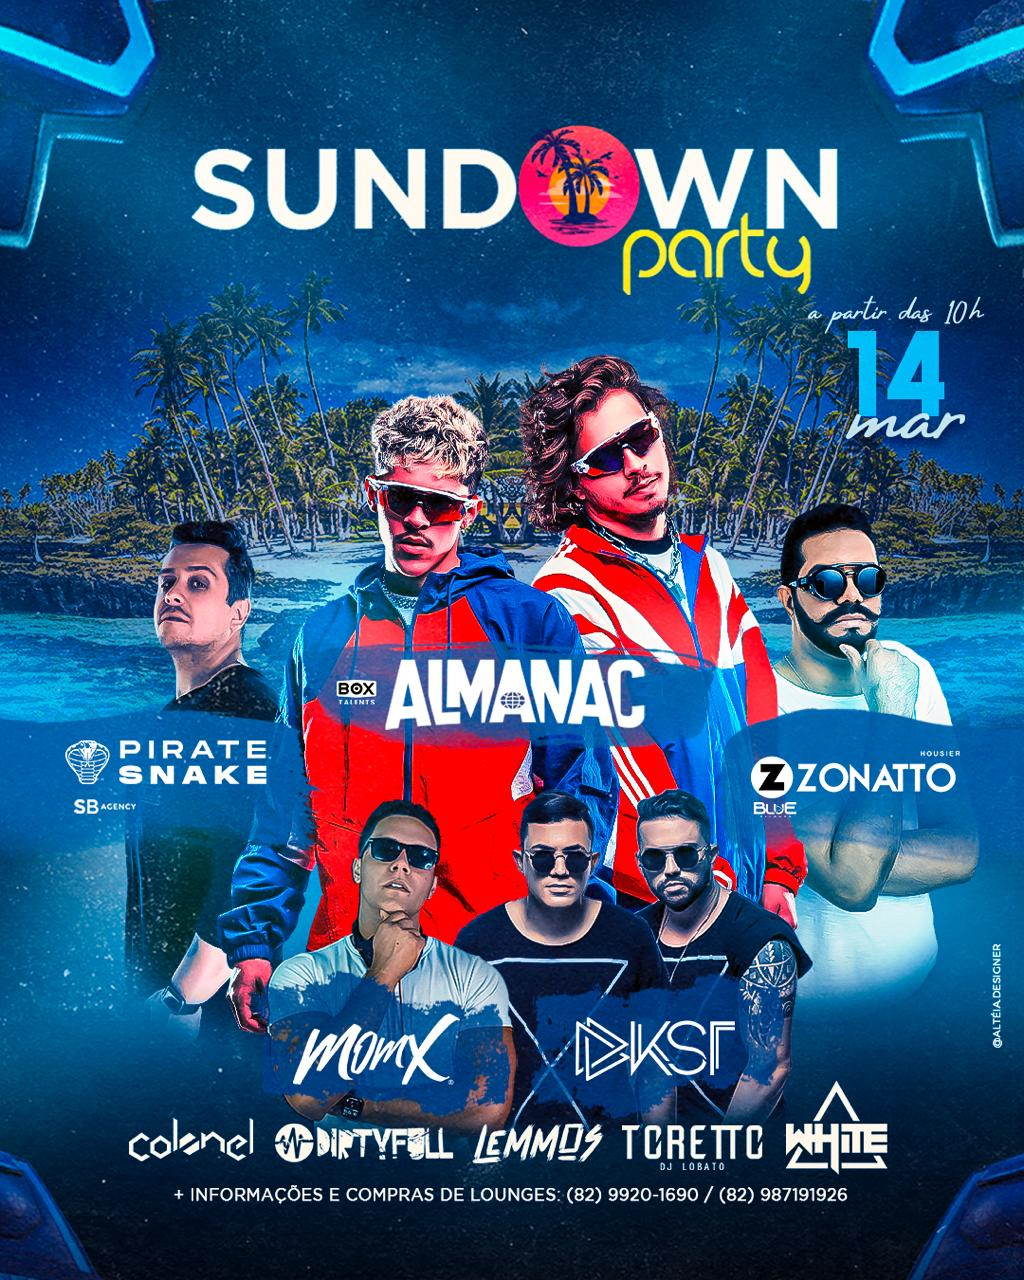 Sundow Party